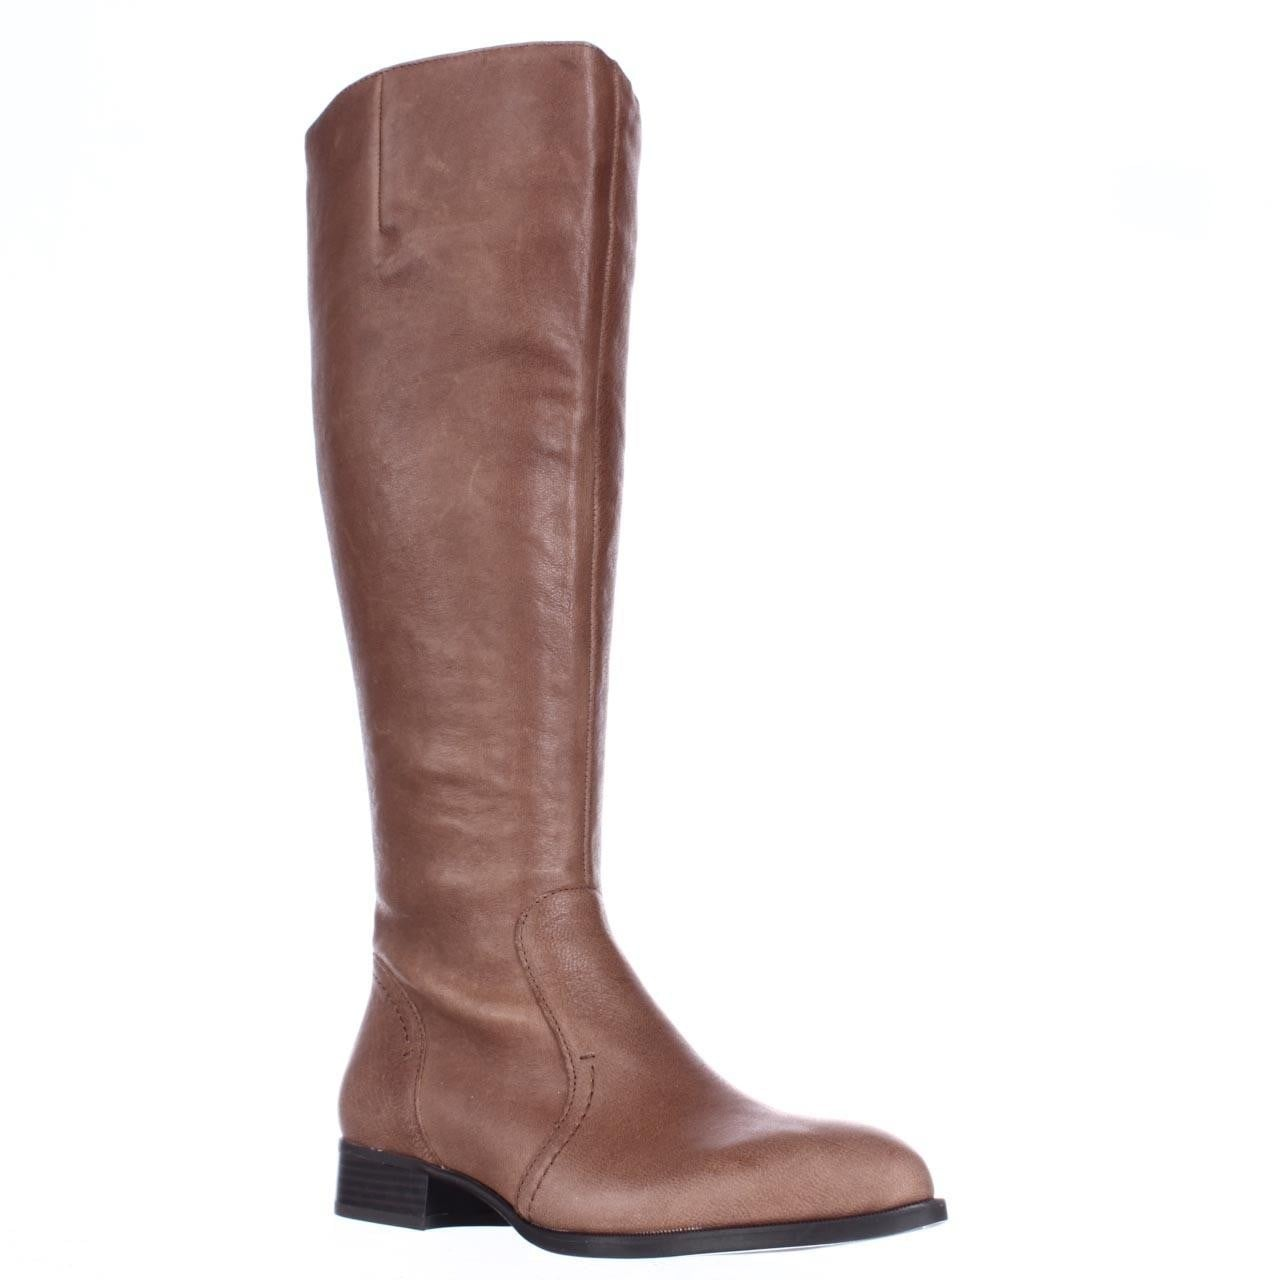 7d60907fa30 Nine West Womens Nicolah-Wide Calf Leather Pointed Toe Knee High Fashion  Boots